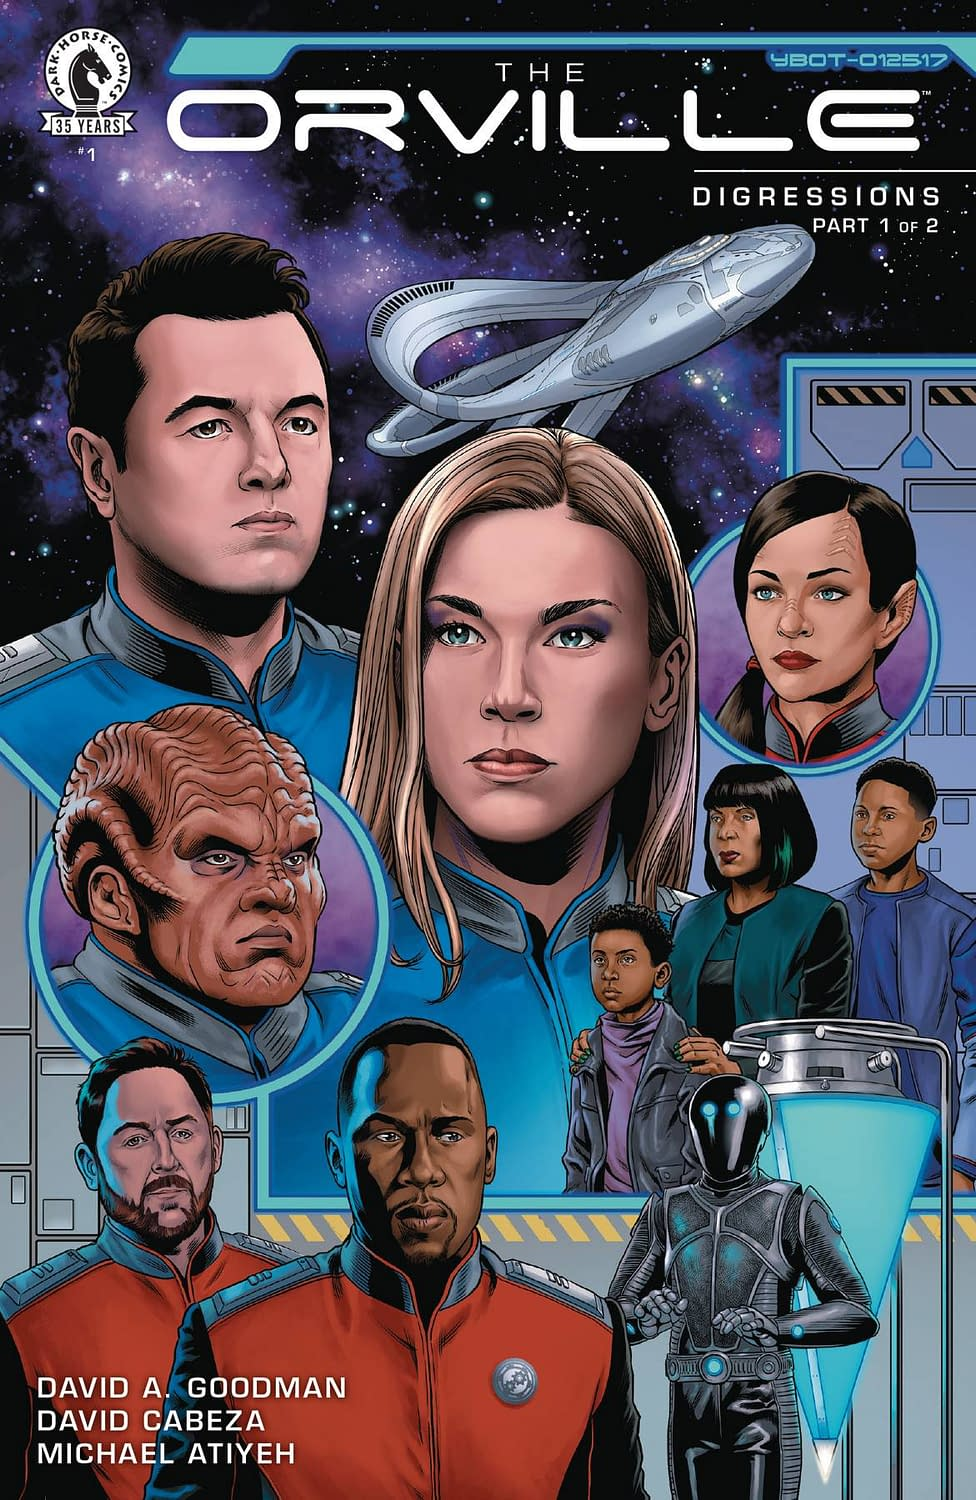 ORVILLE DIGRESSIONS #1 (OF 2)